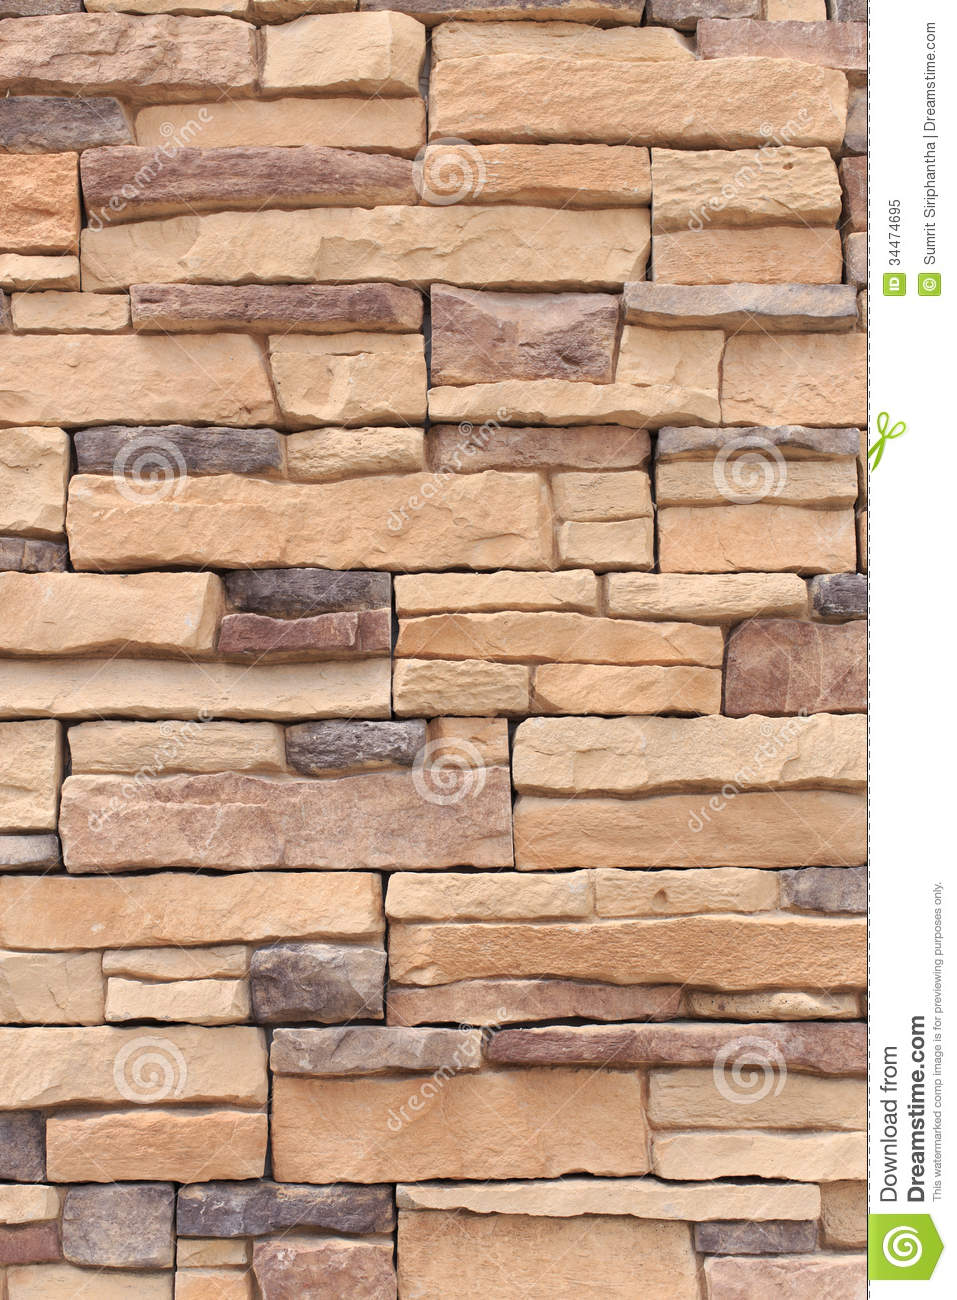 Marble Wall Cladding Details : New stone wall cladding stock image of slate beige